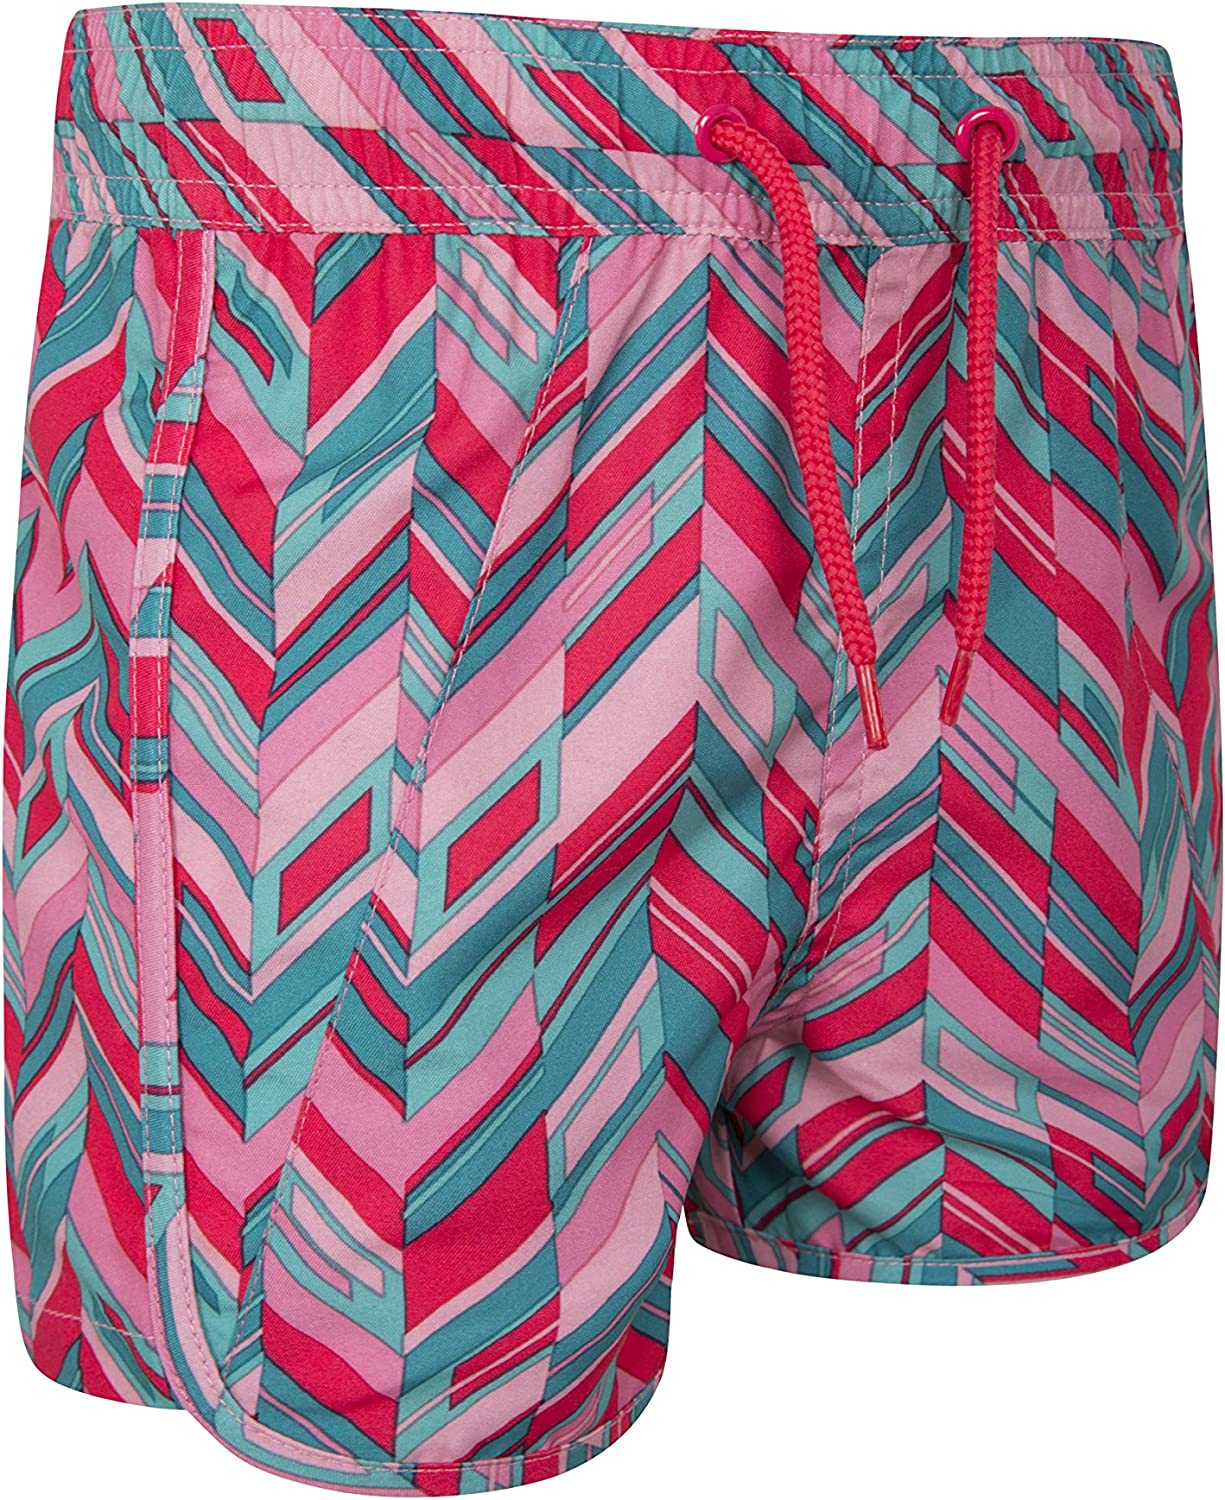 Mountain Warehouse Patterned Boys Boardshorts Kids Swim Shorts